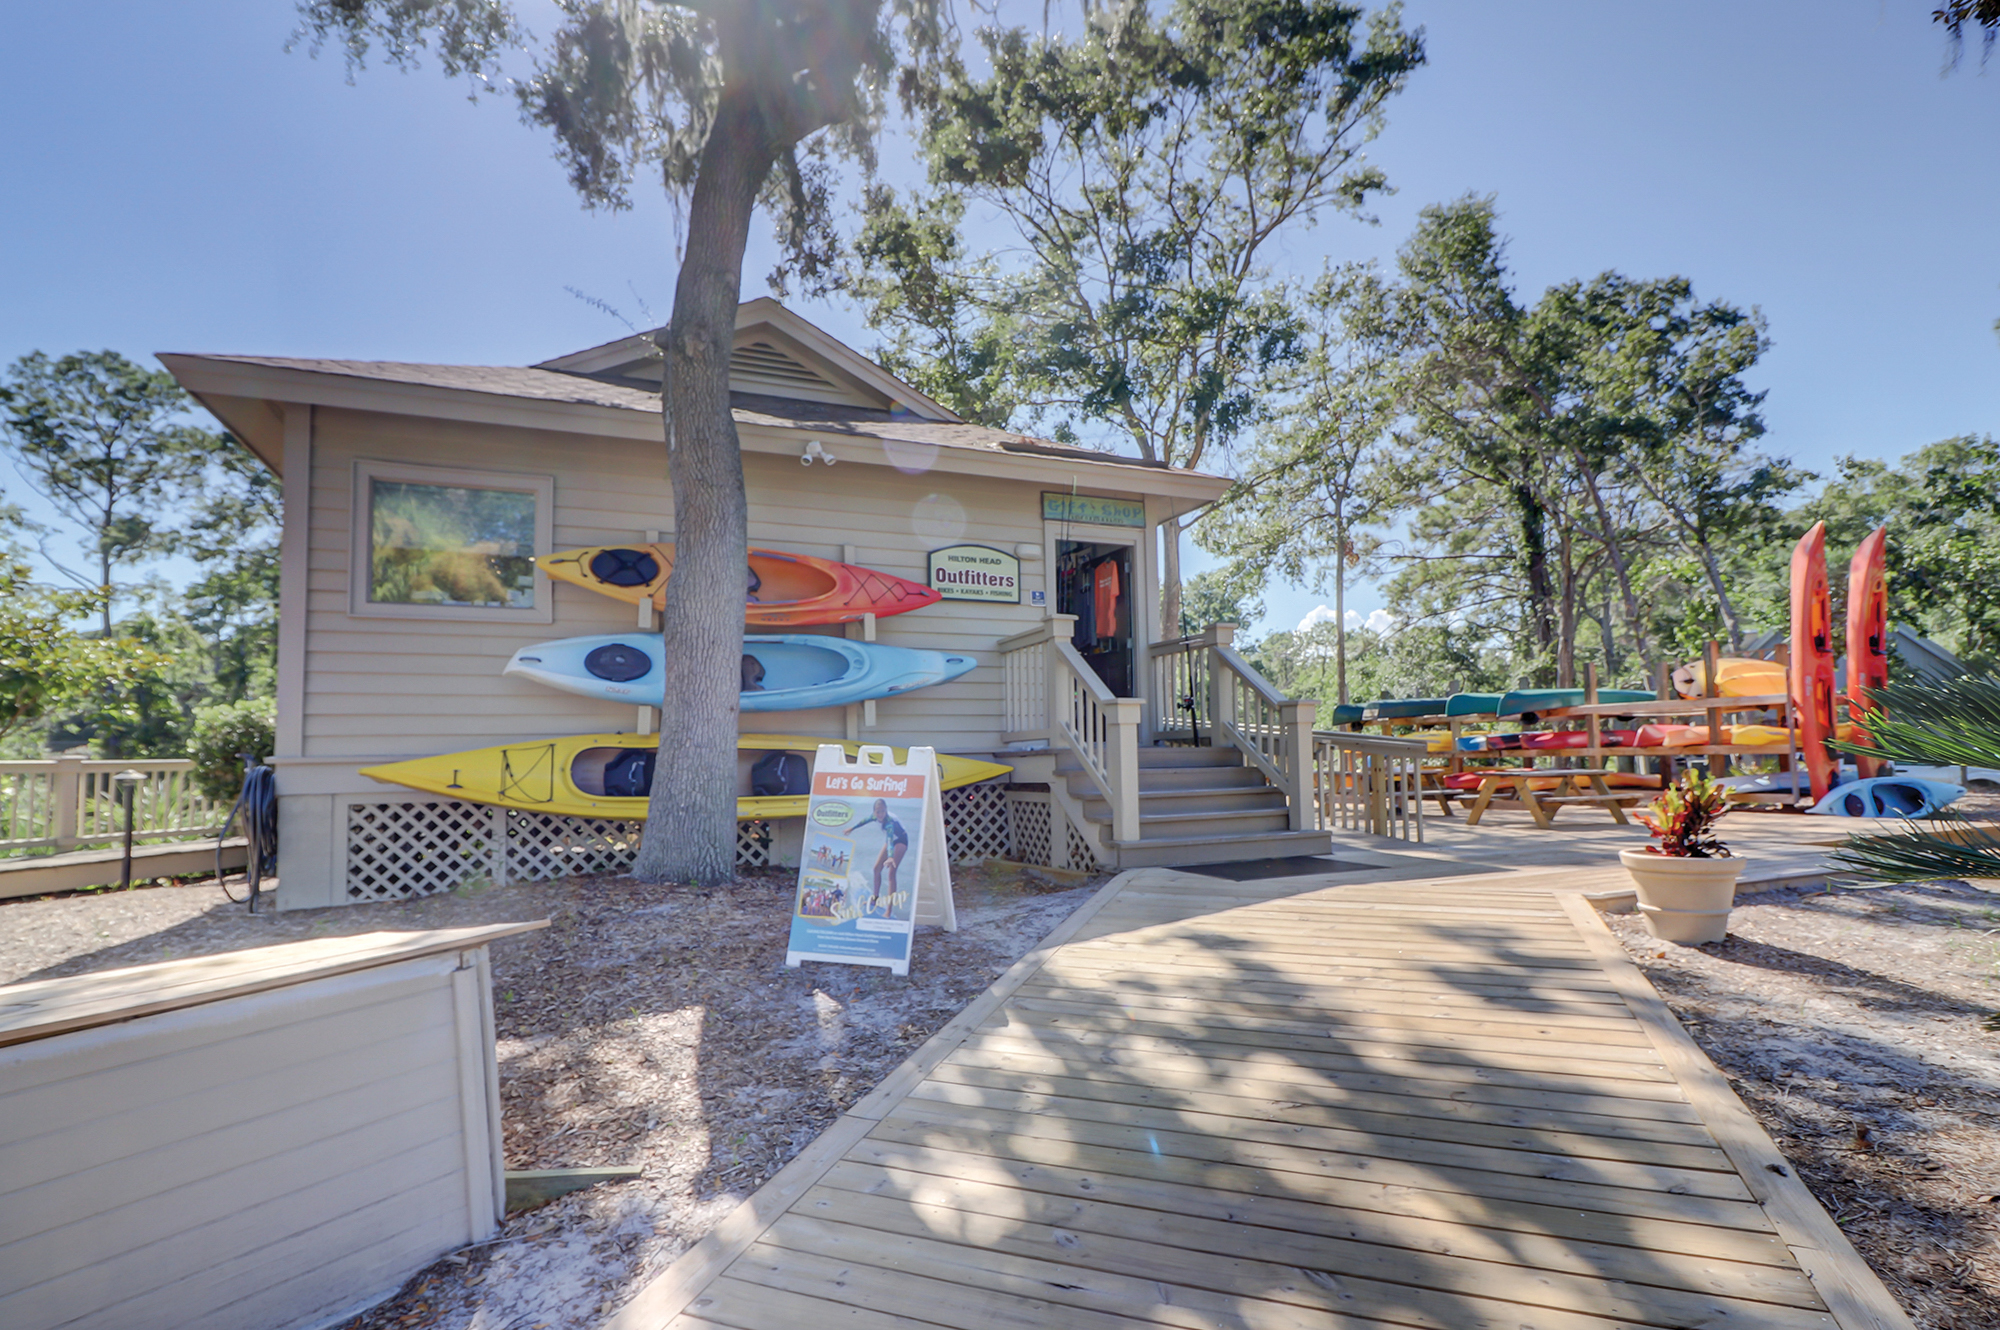 Kayaks, beach gear and bike rentals available at the Palmetto Dunes Outfitter